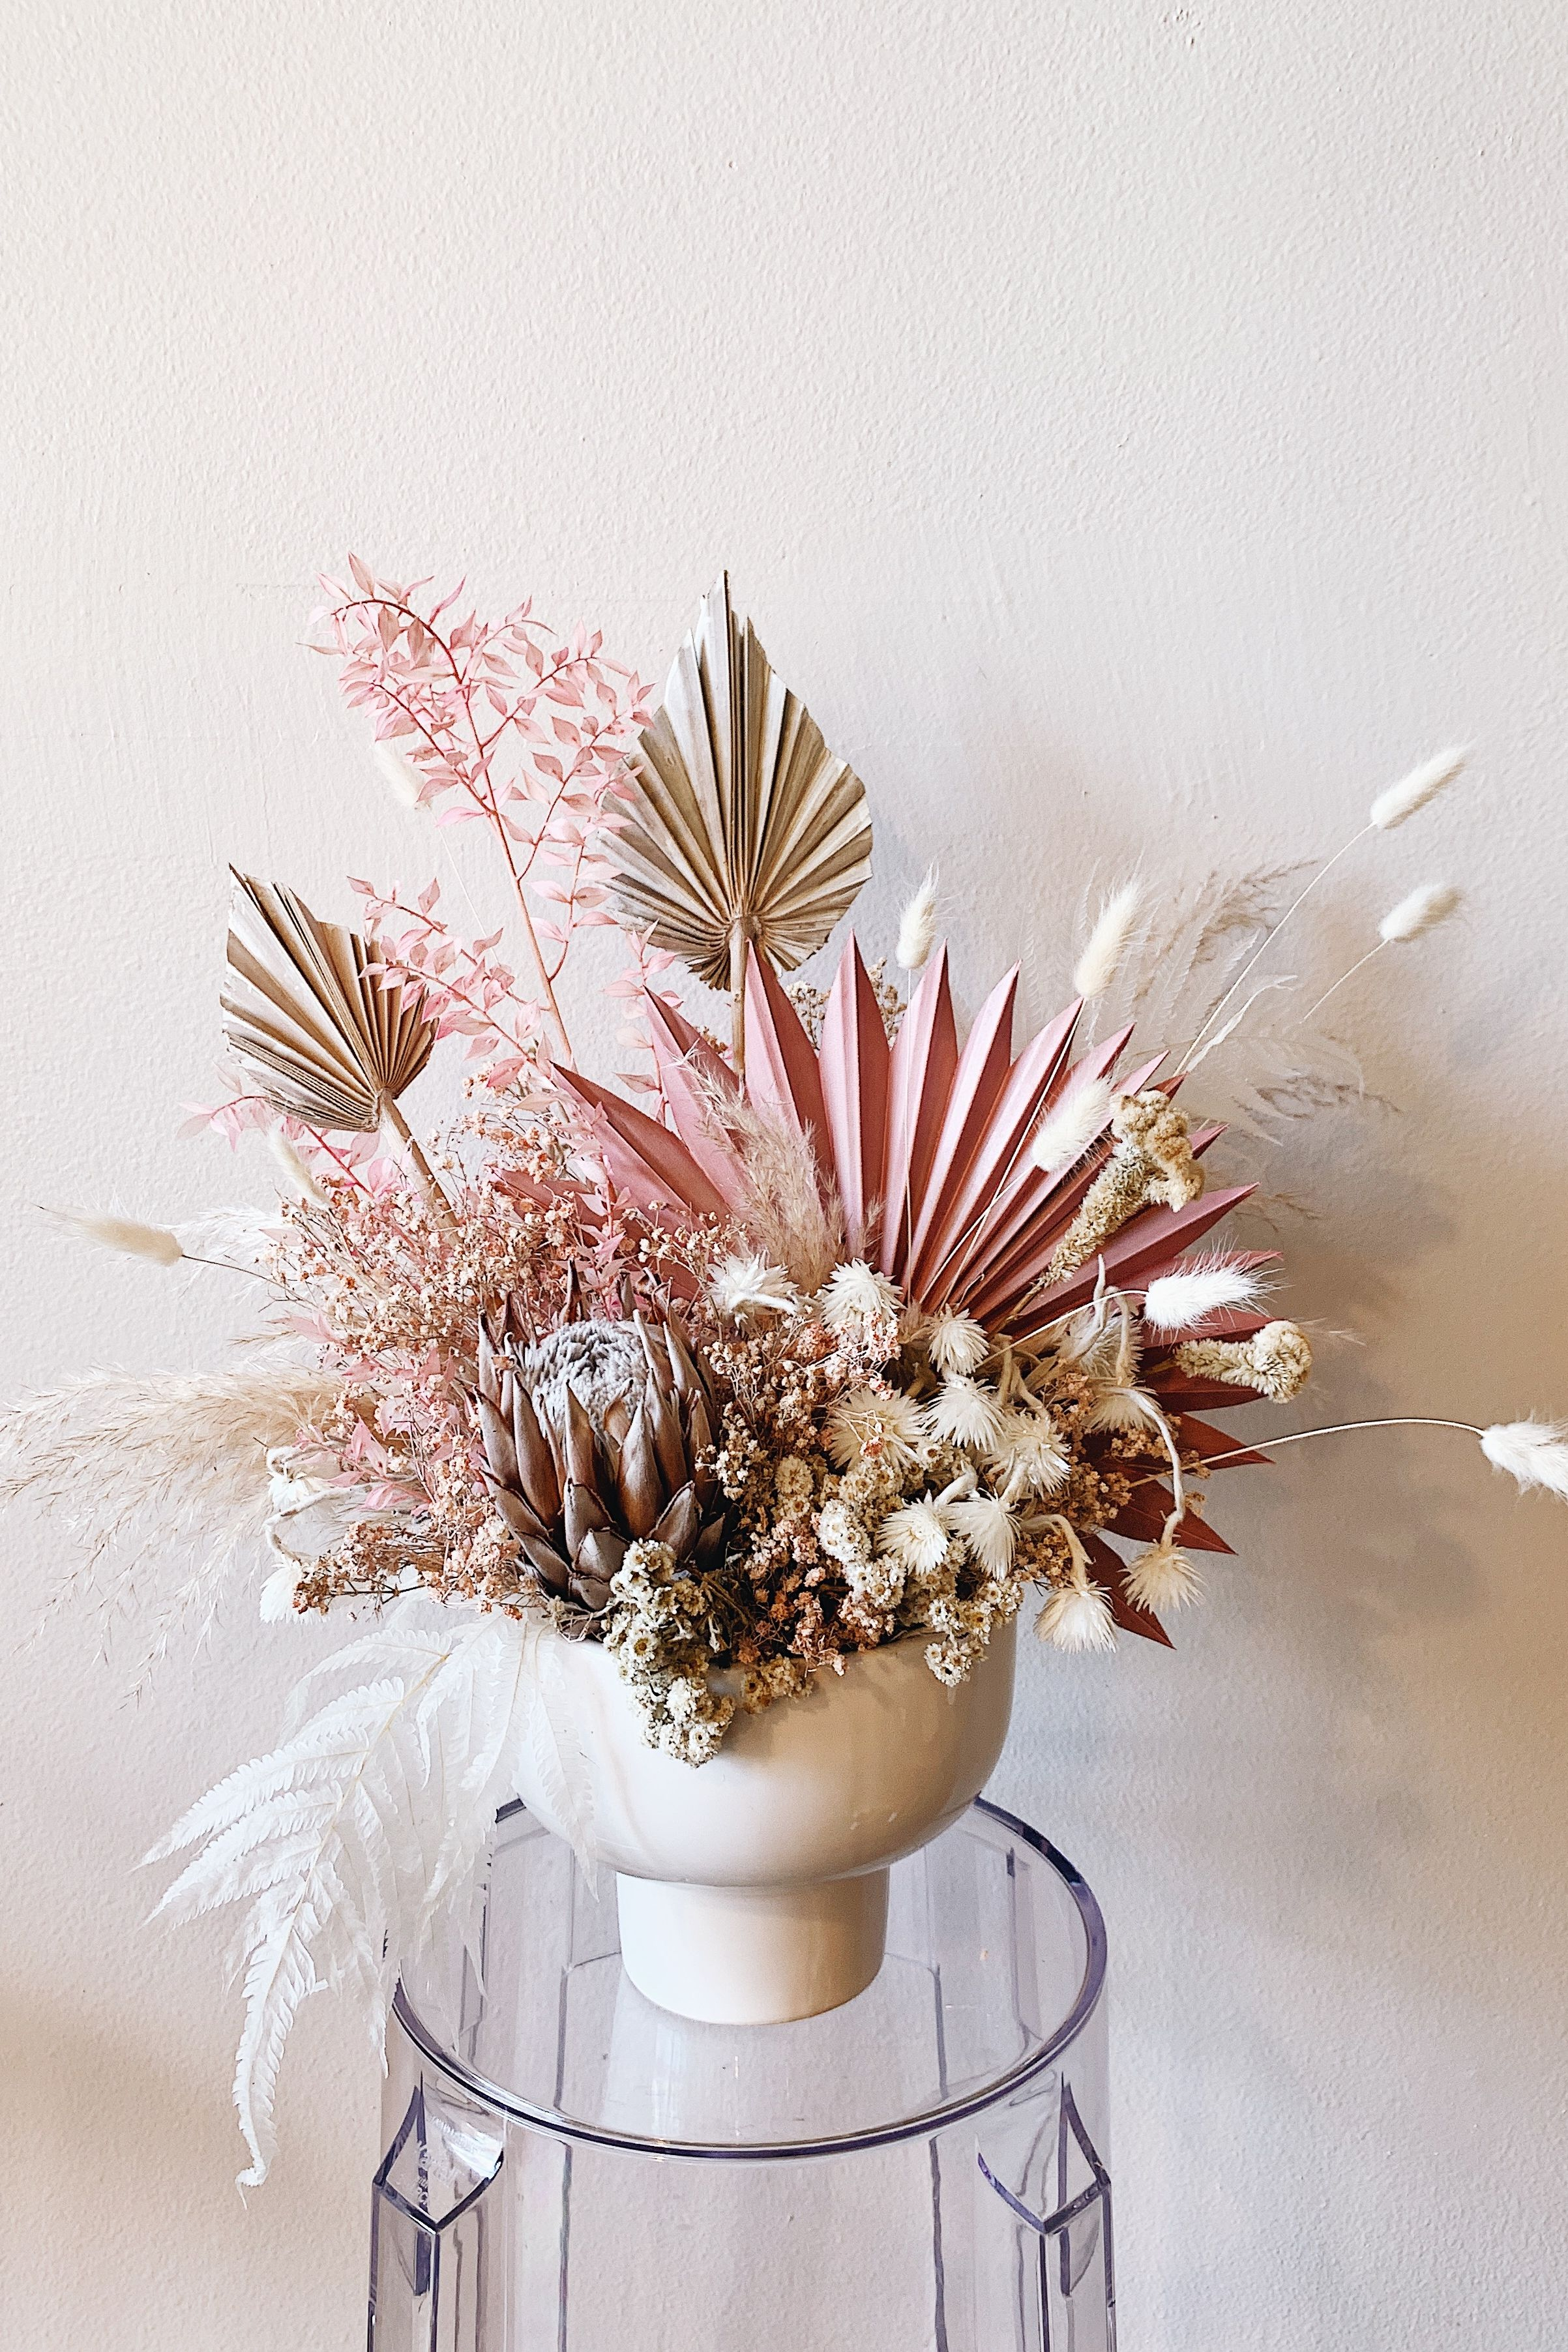 Create a stunning centerpiece for your DIY wedding with pink and white dried flowers from Afloral.com. Image and design by @anna.labeau #pampaswedding #driedflowerwedding #driedflowers #afloral